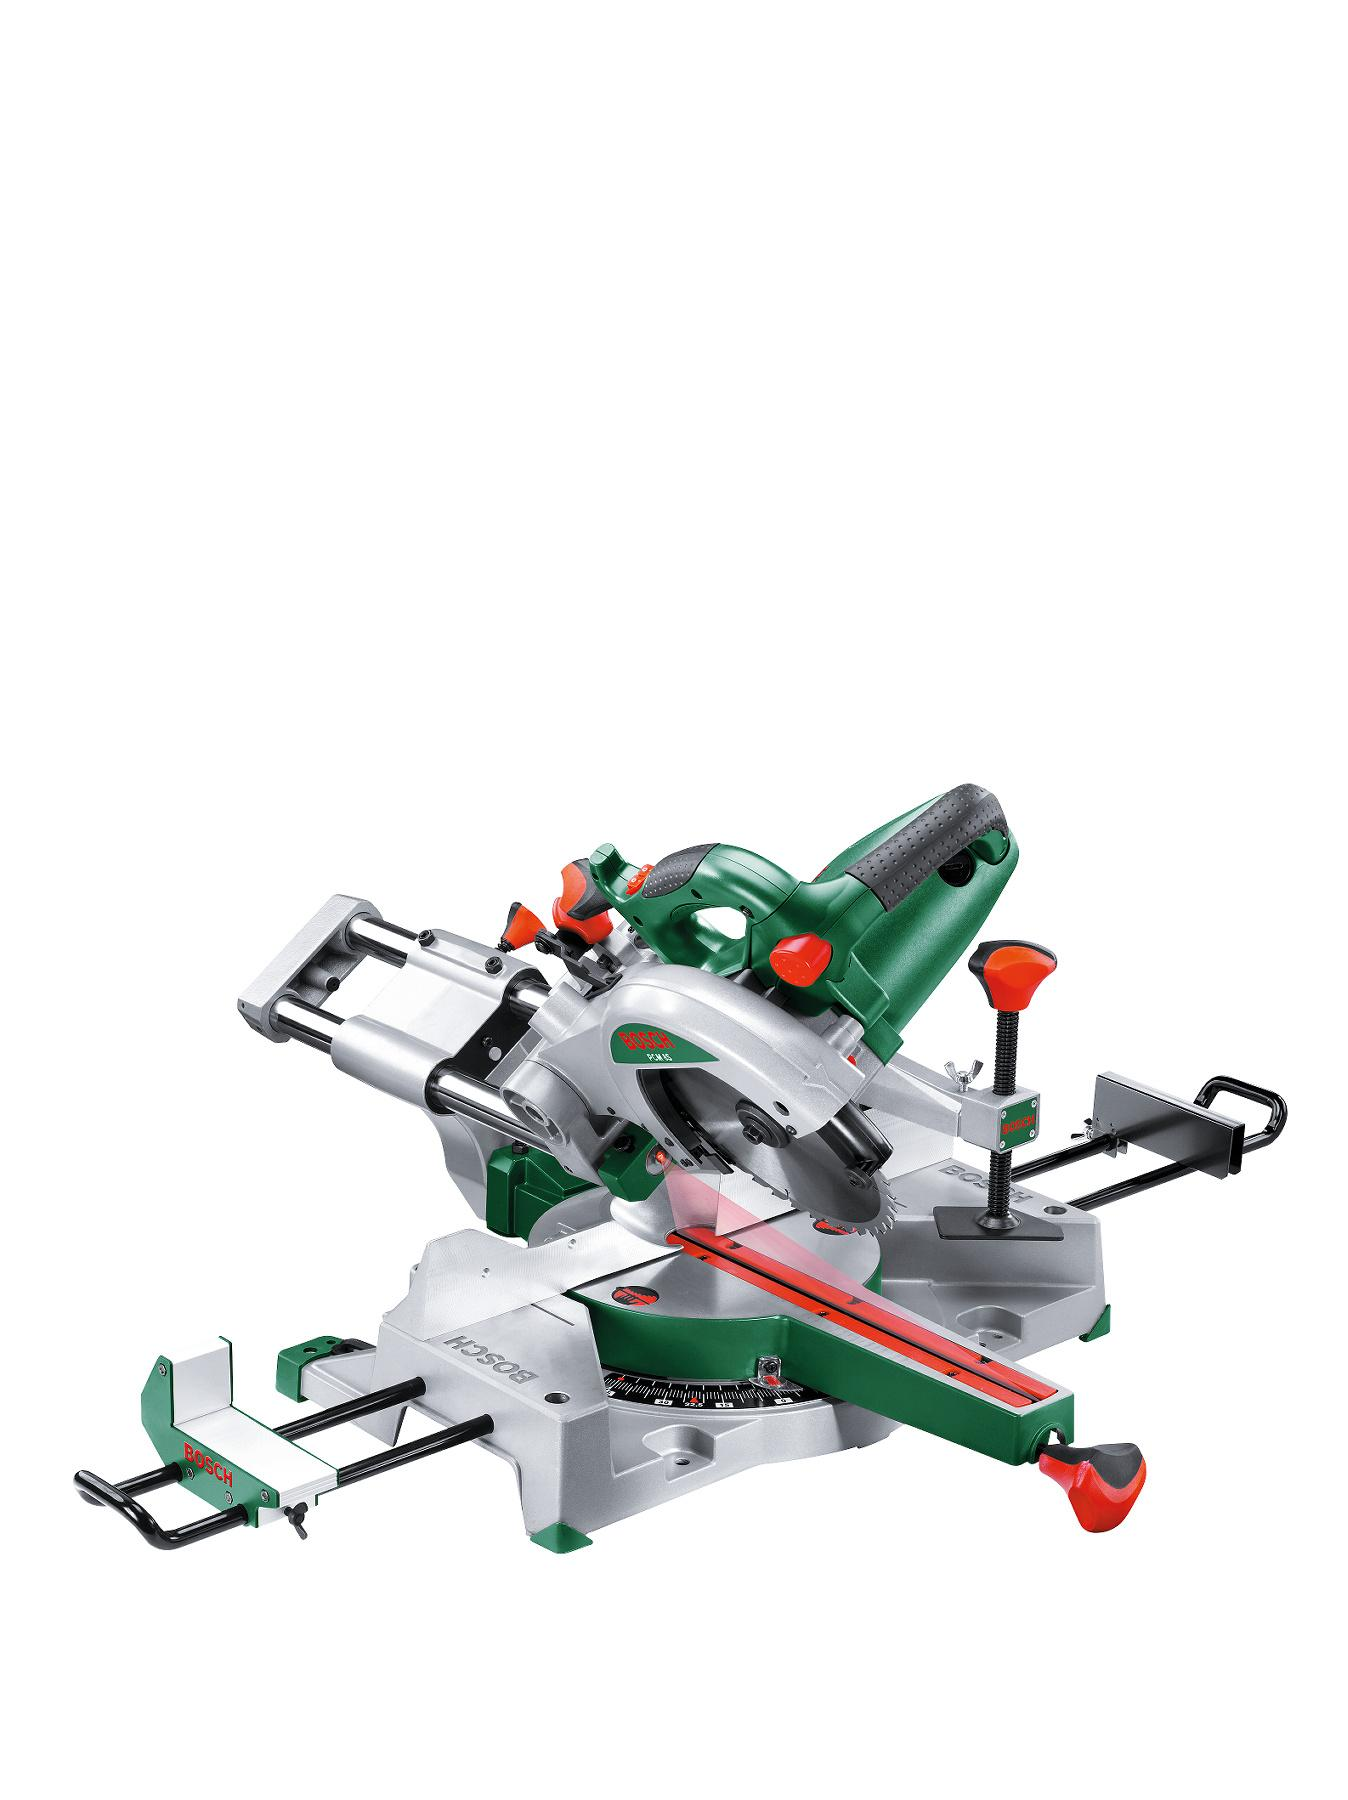 Bosch PCM 8 S Compound Sliding Mitre Saw